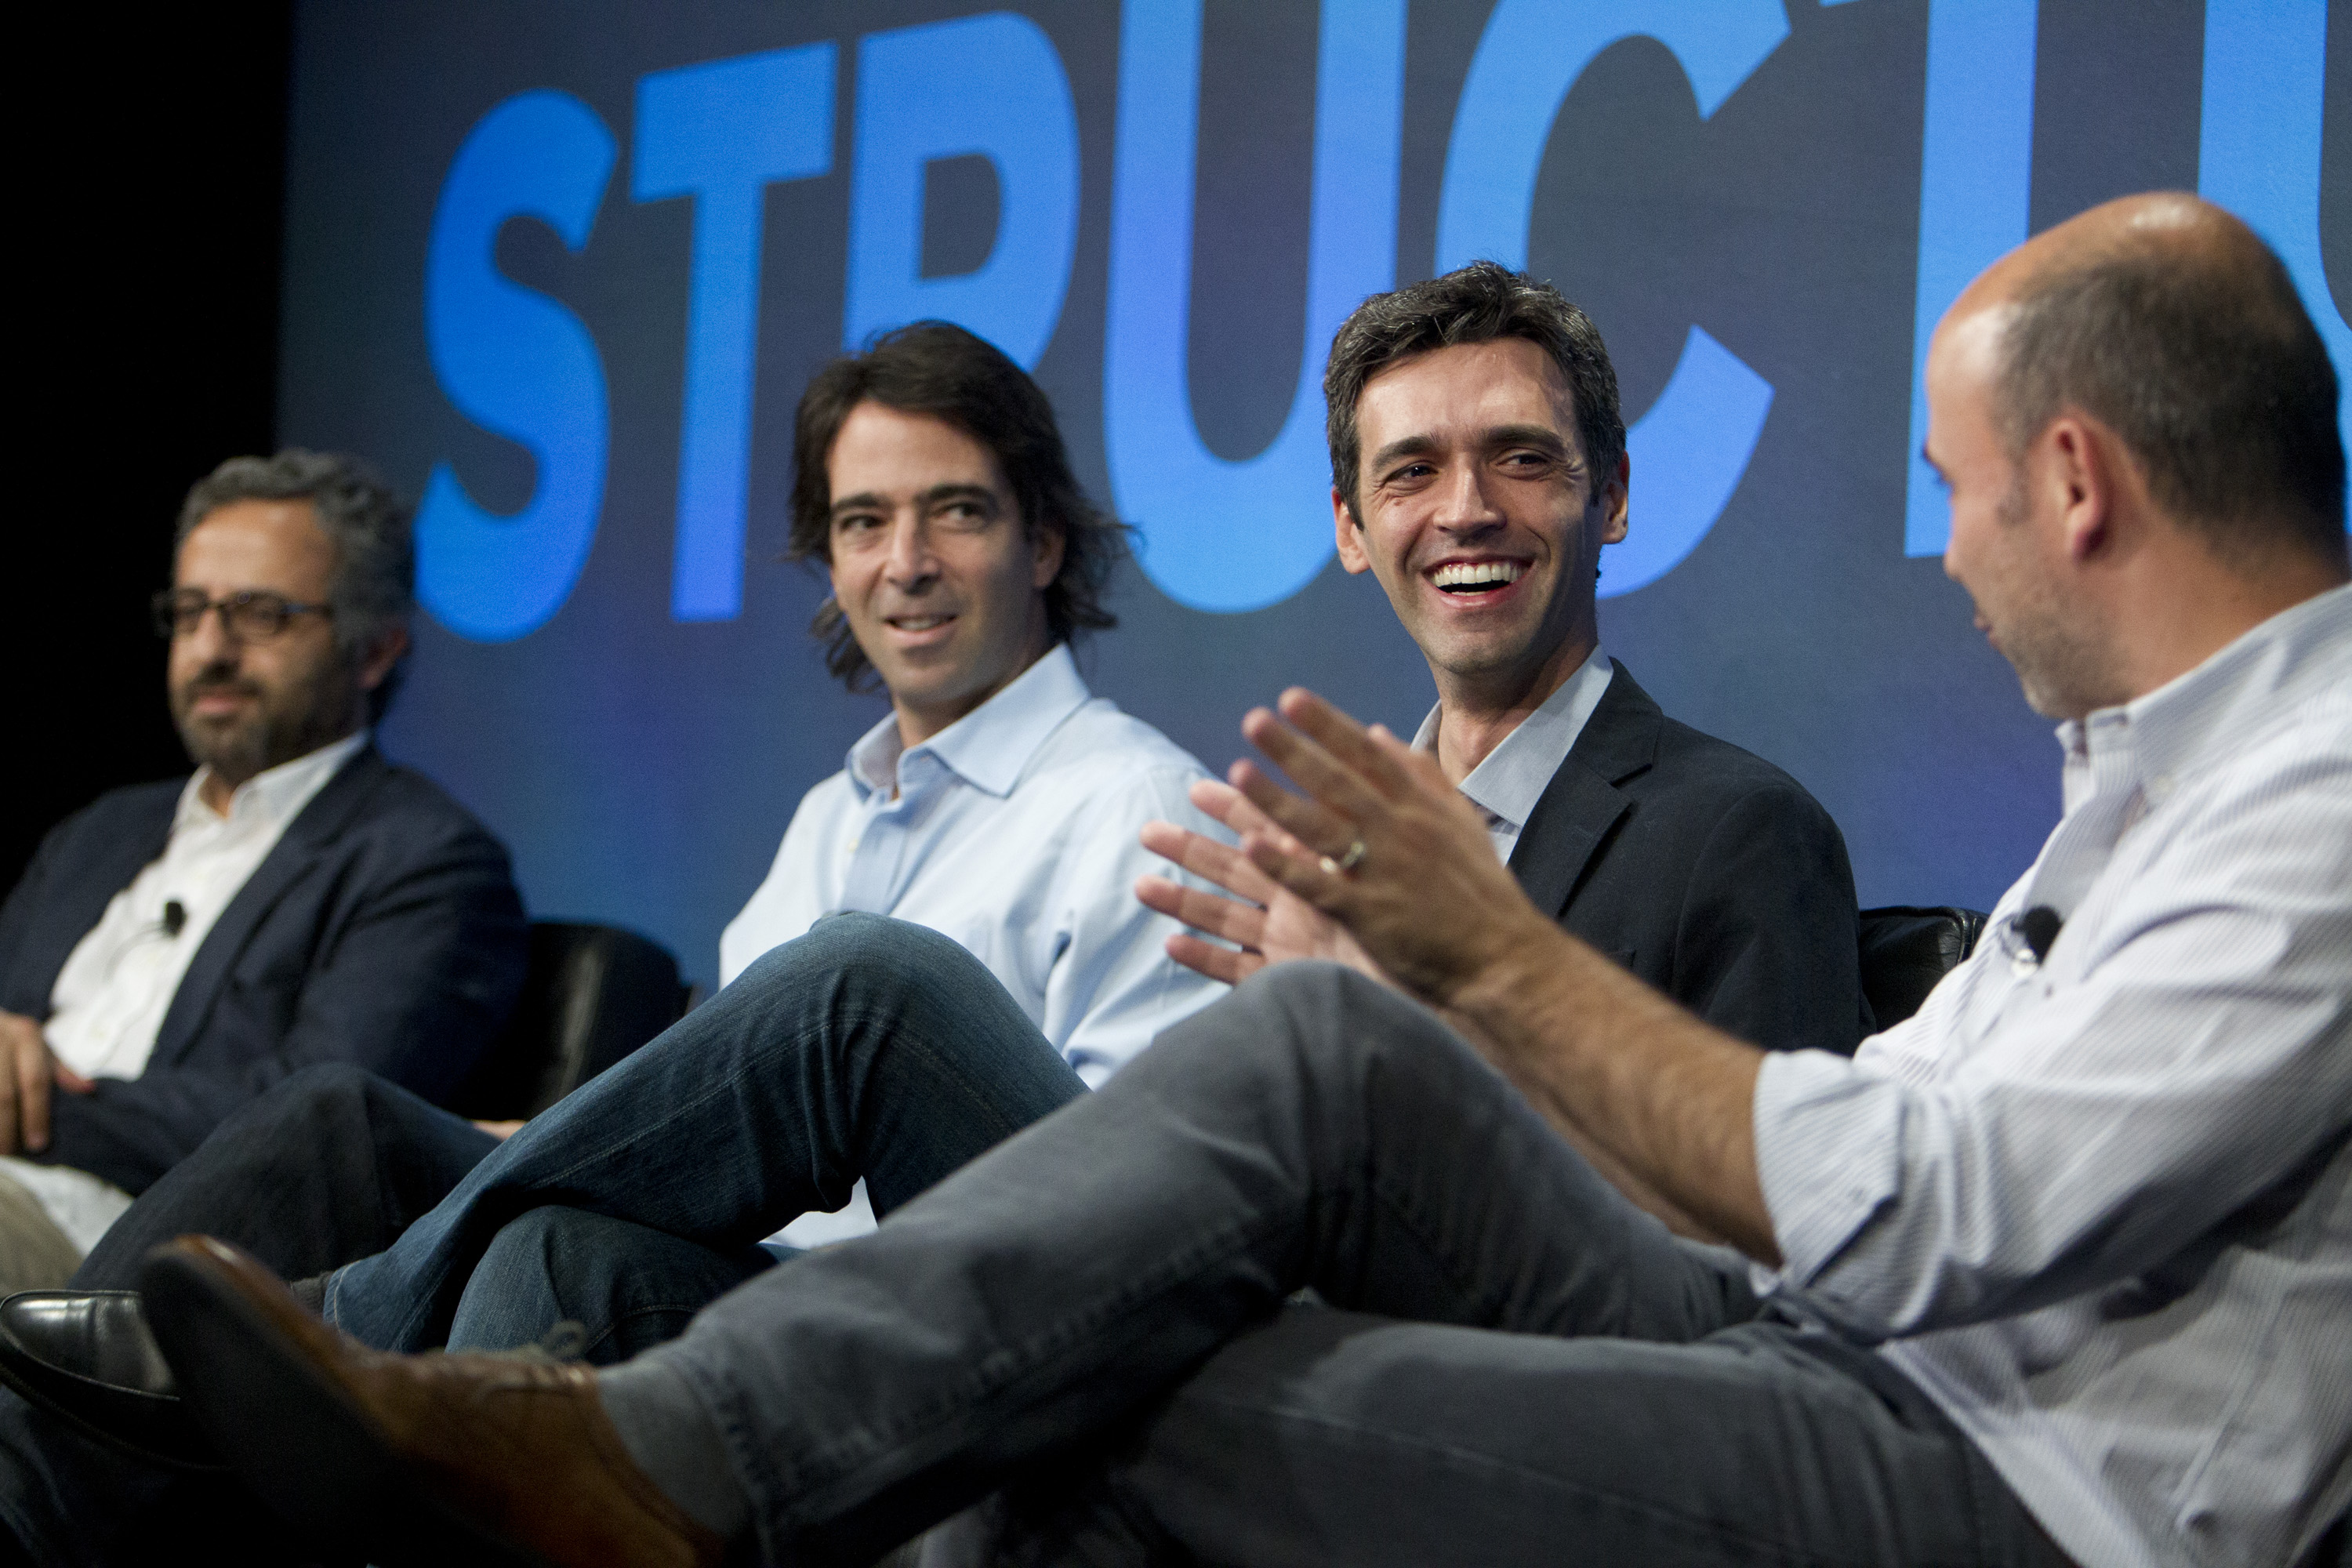 From L to R, Rabih Nassar, CEO of Apstrata; Germany Dyzenchauz, CEO of GoIntegro; Antonio Carlos Soares, CEO if Runrun.it